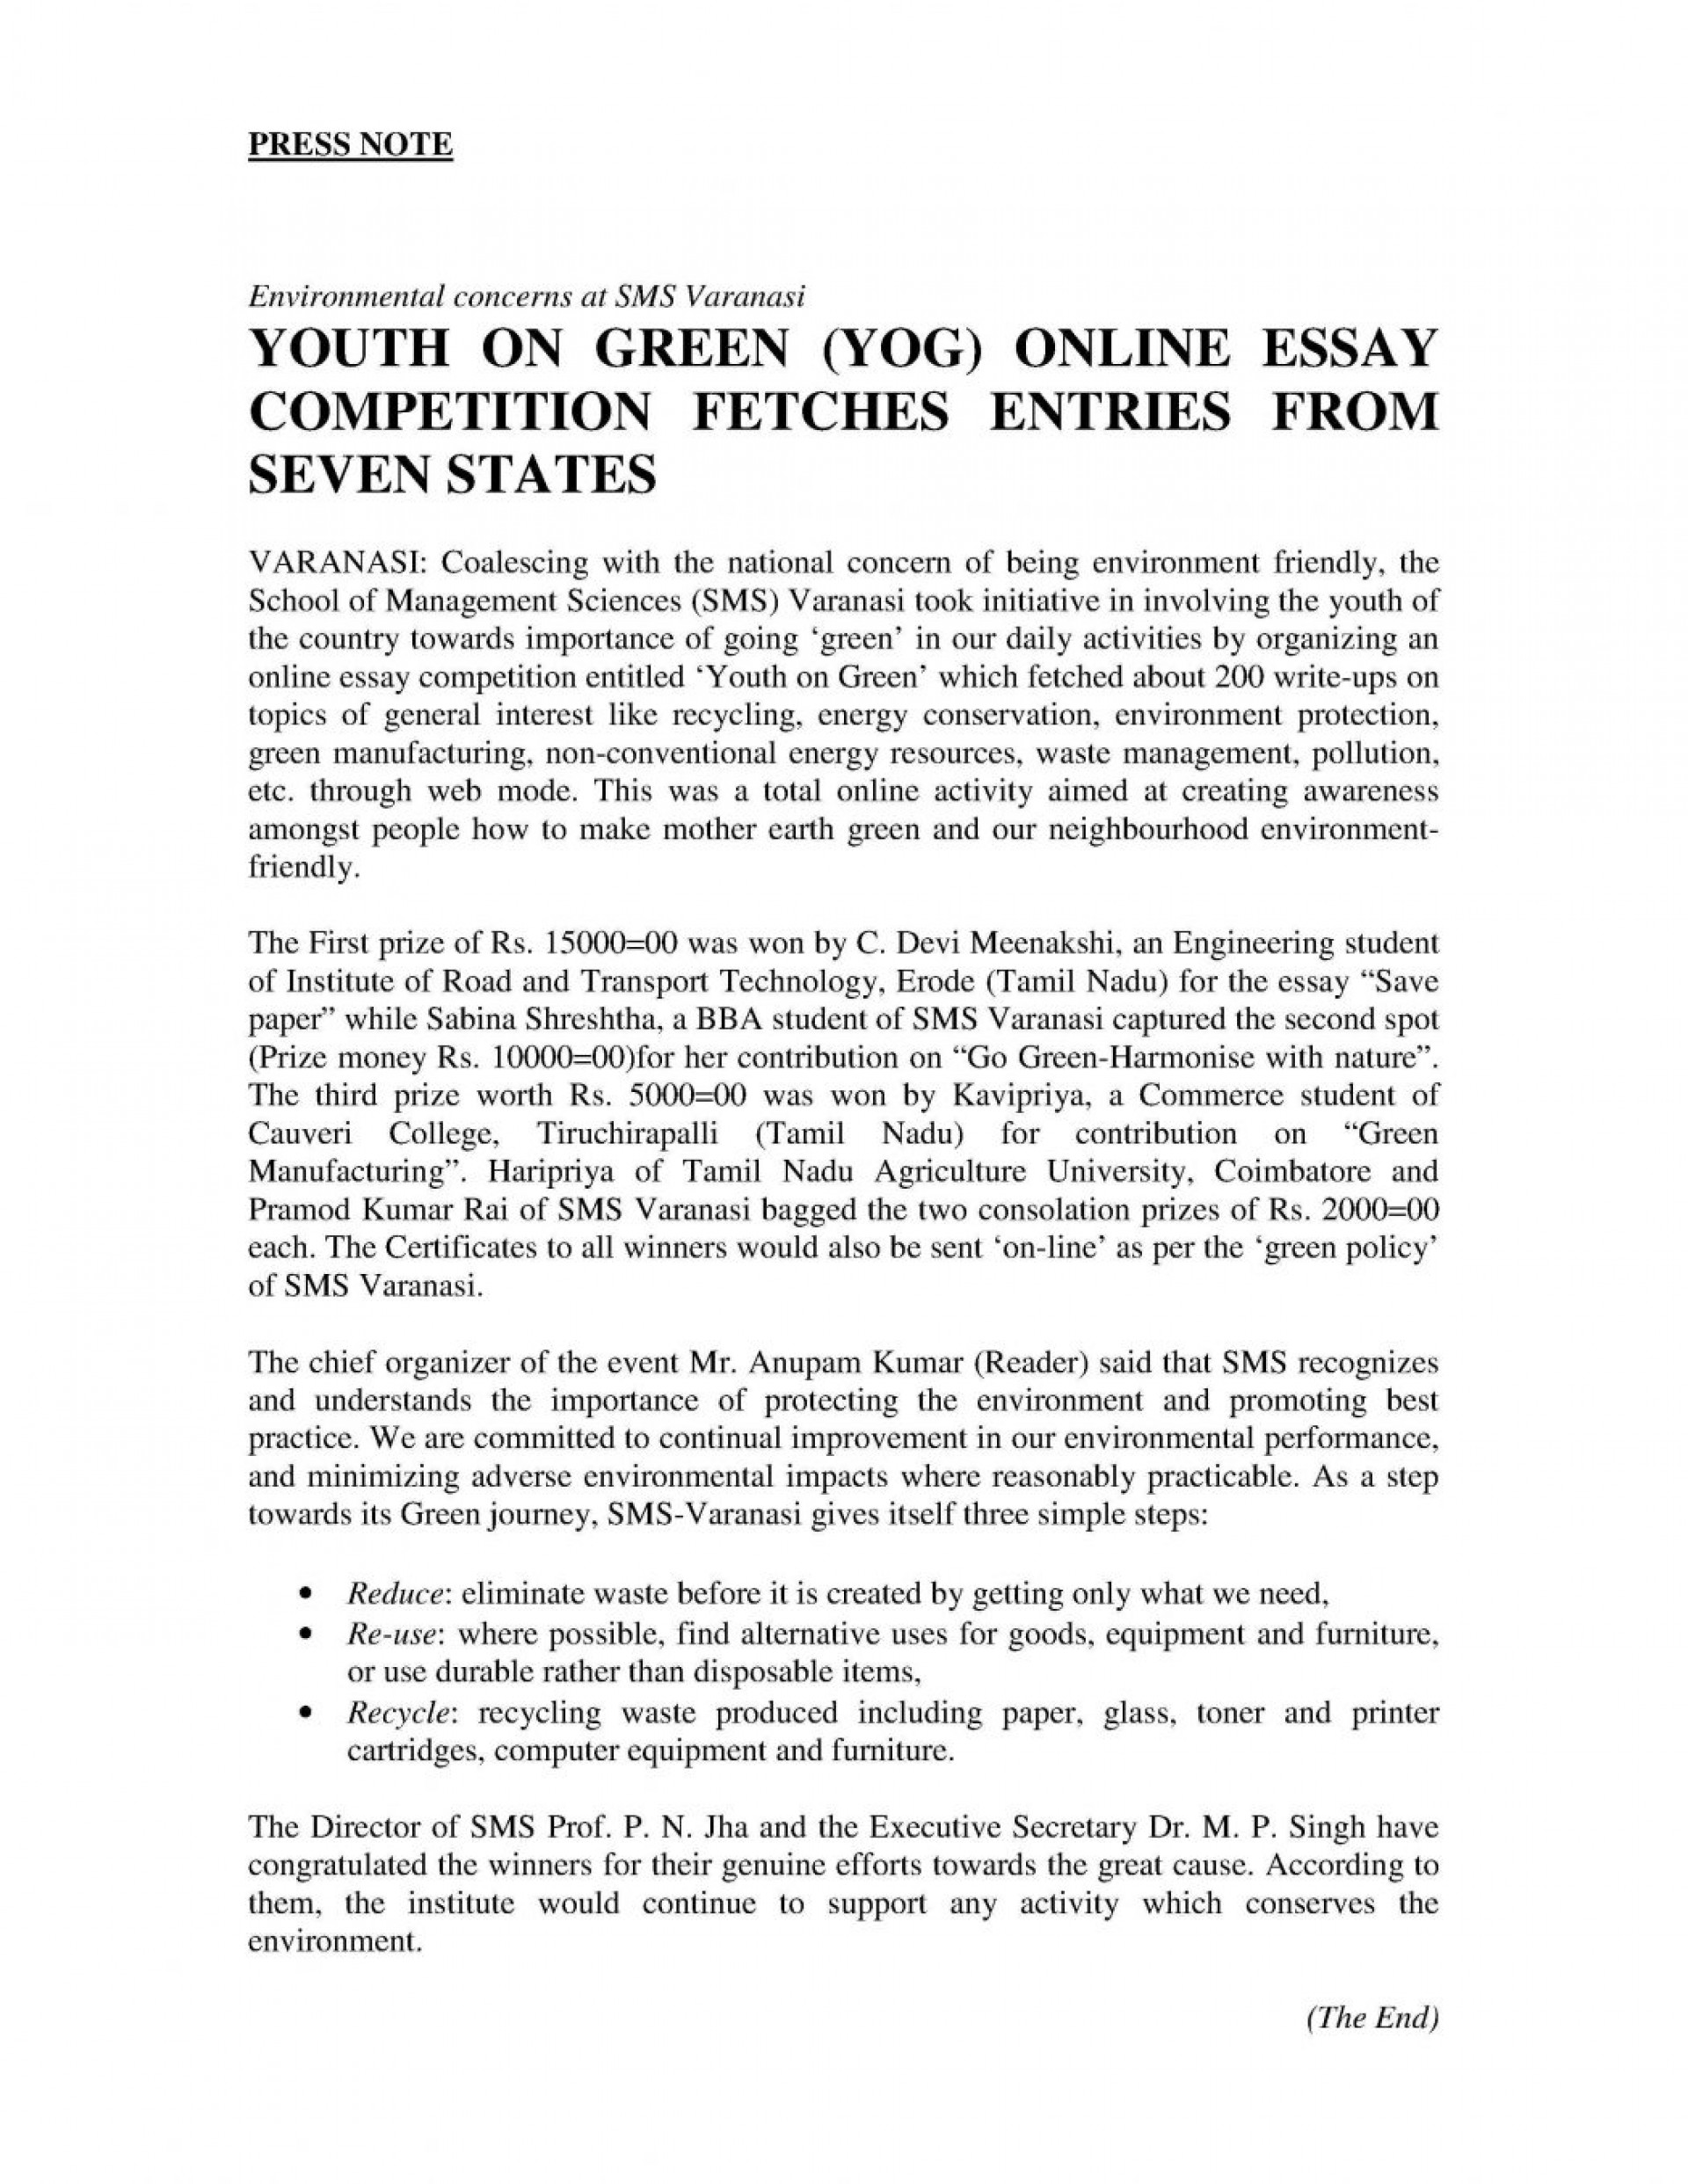 020 Best Essays For College Essay On Good Habits How Tot Application Online Yog Press Re About Yourself Examples Your Background Failure Prompt Off Hook 1048x1356 Example Amazing To Start An Write A Paper Climate Change Expository With Quote Format 1920